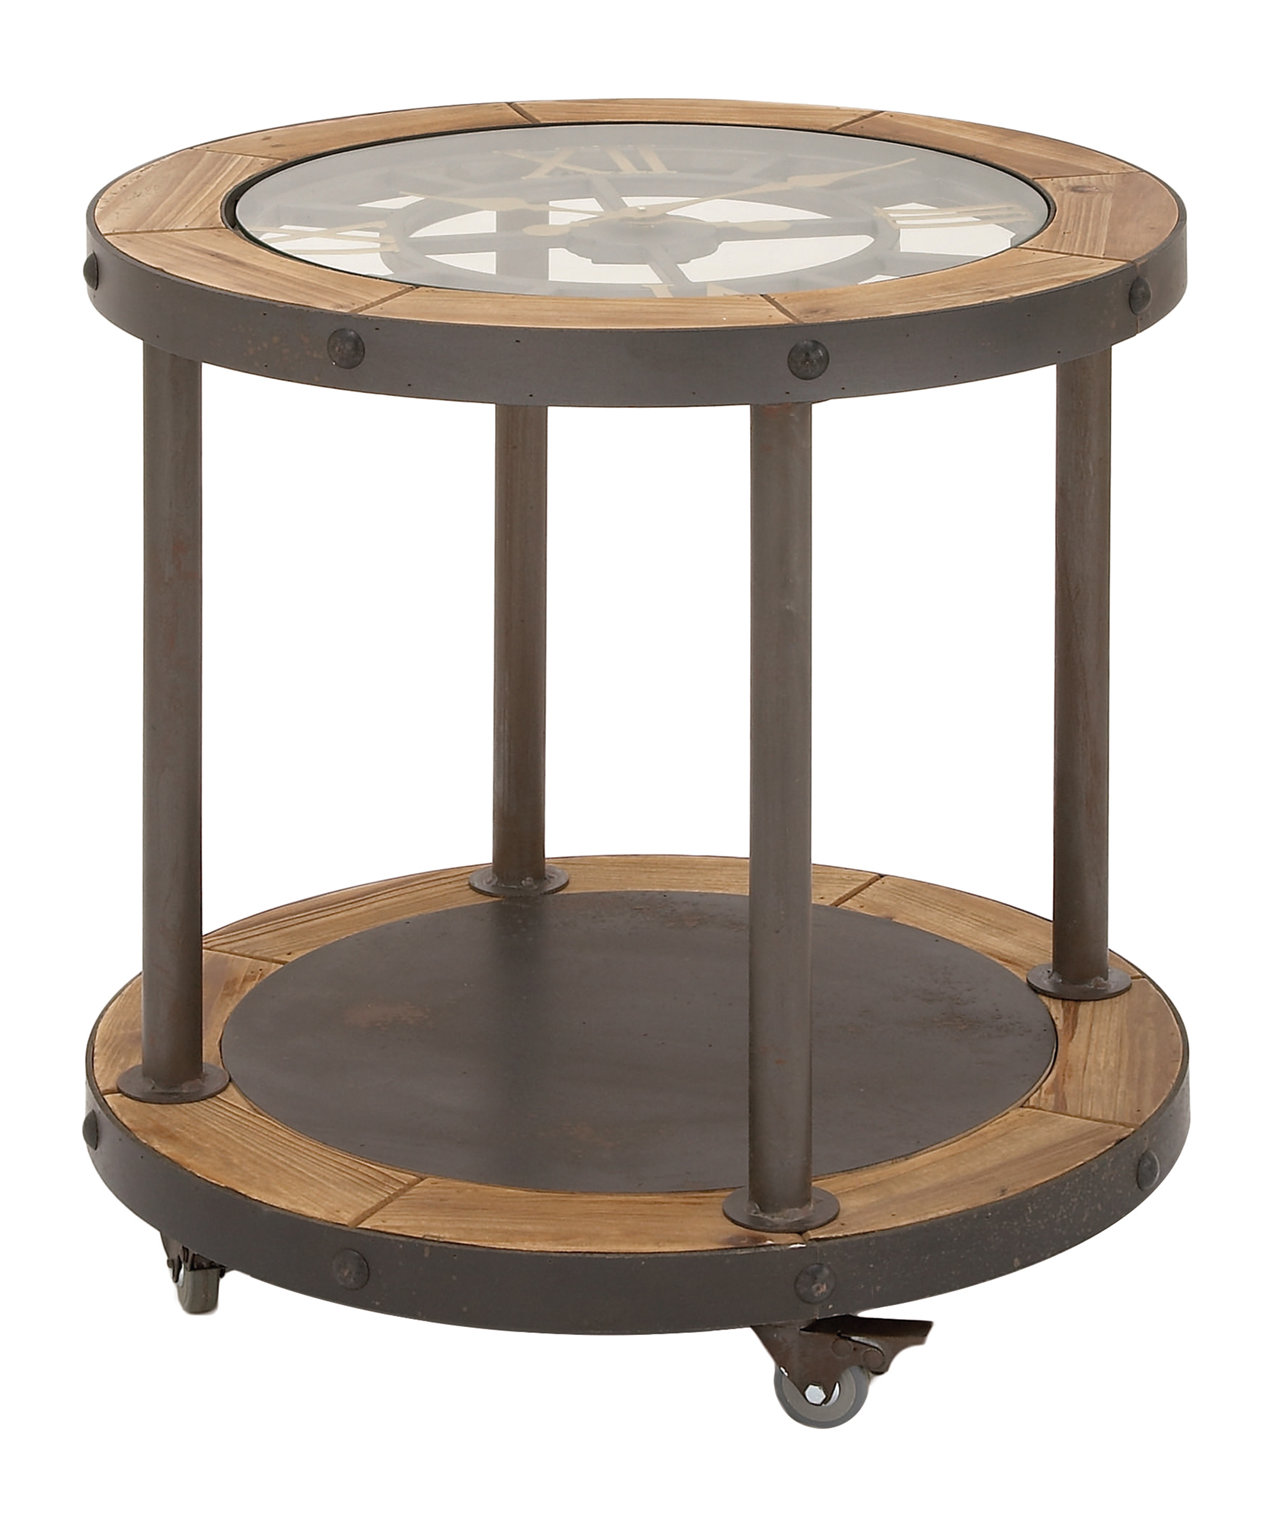 urban designs clock top industrial end table chestnut accent pottery barn bean bag mosaic tile bistro home goods sofa grey occasional formal dining room patio set covers entryway